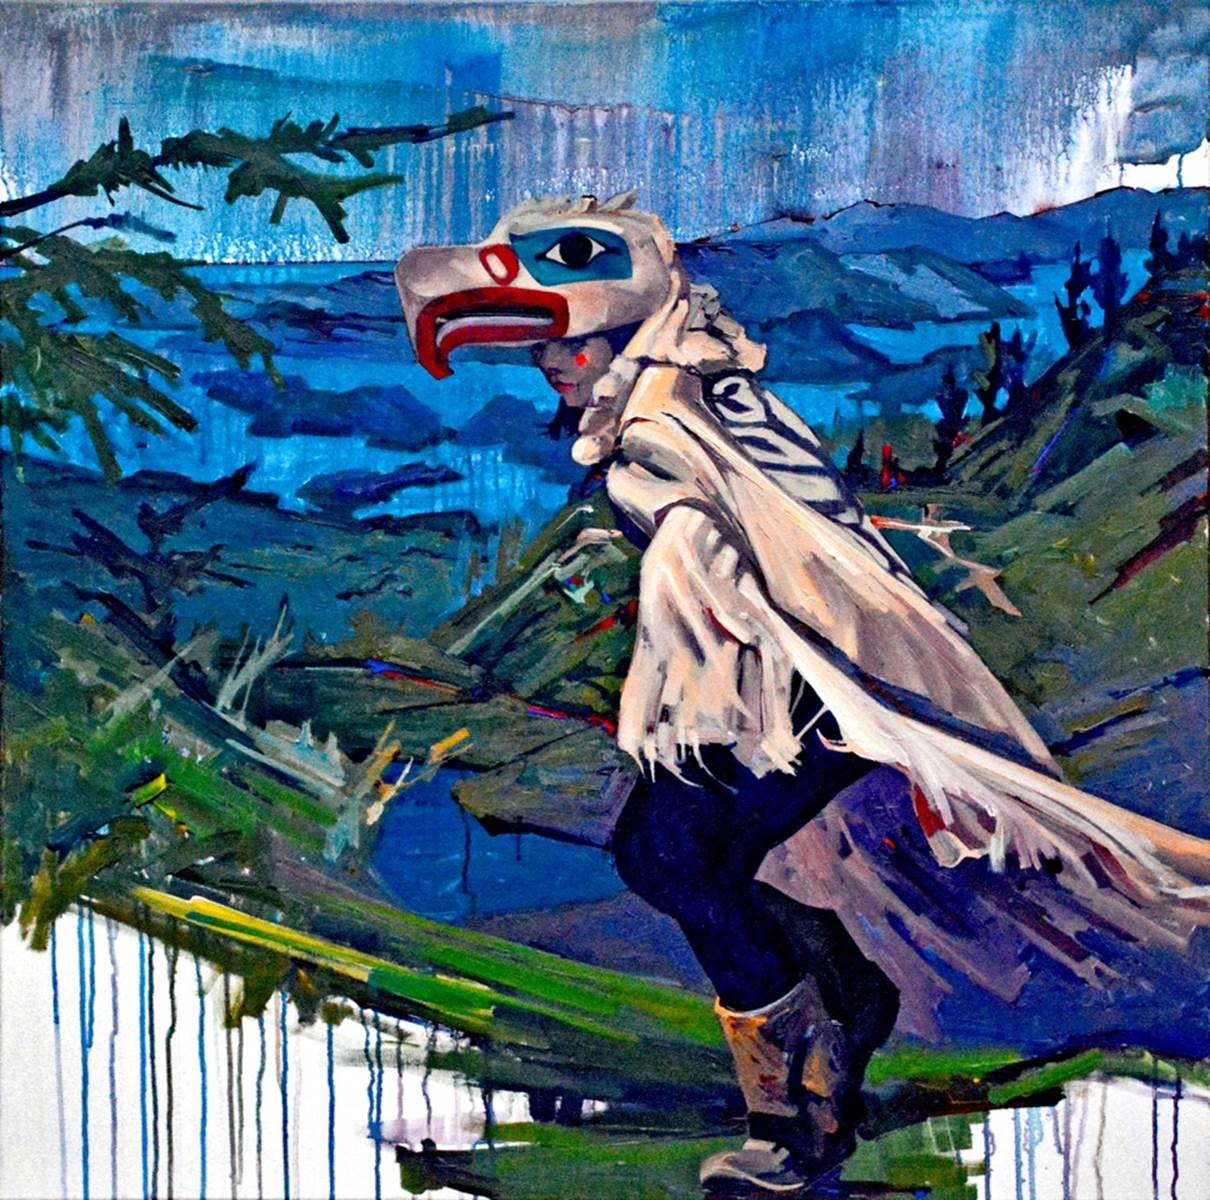 painting of a person wearing a bird mask and costume in a mountainous setting